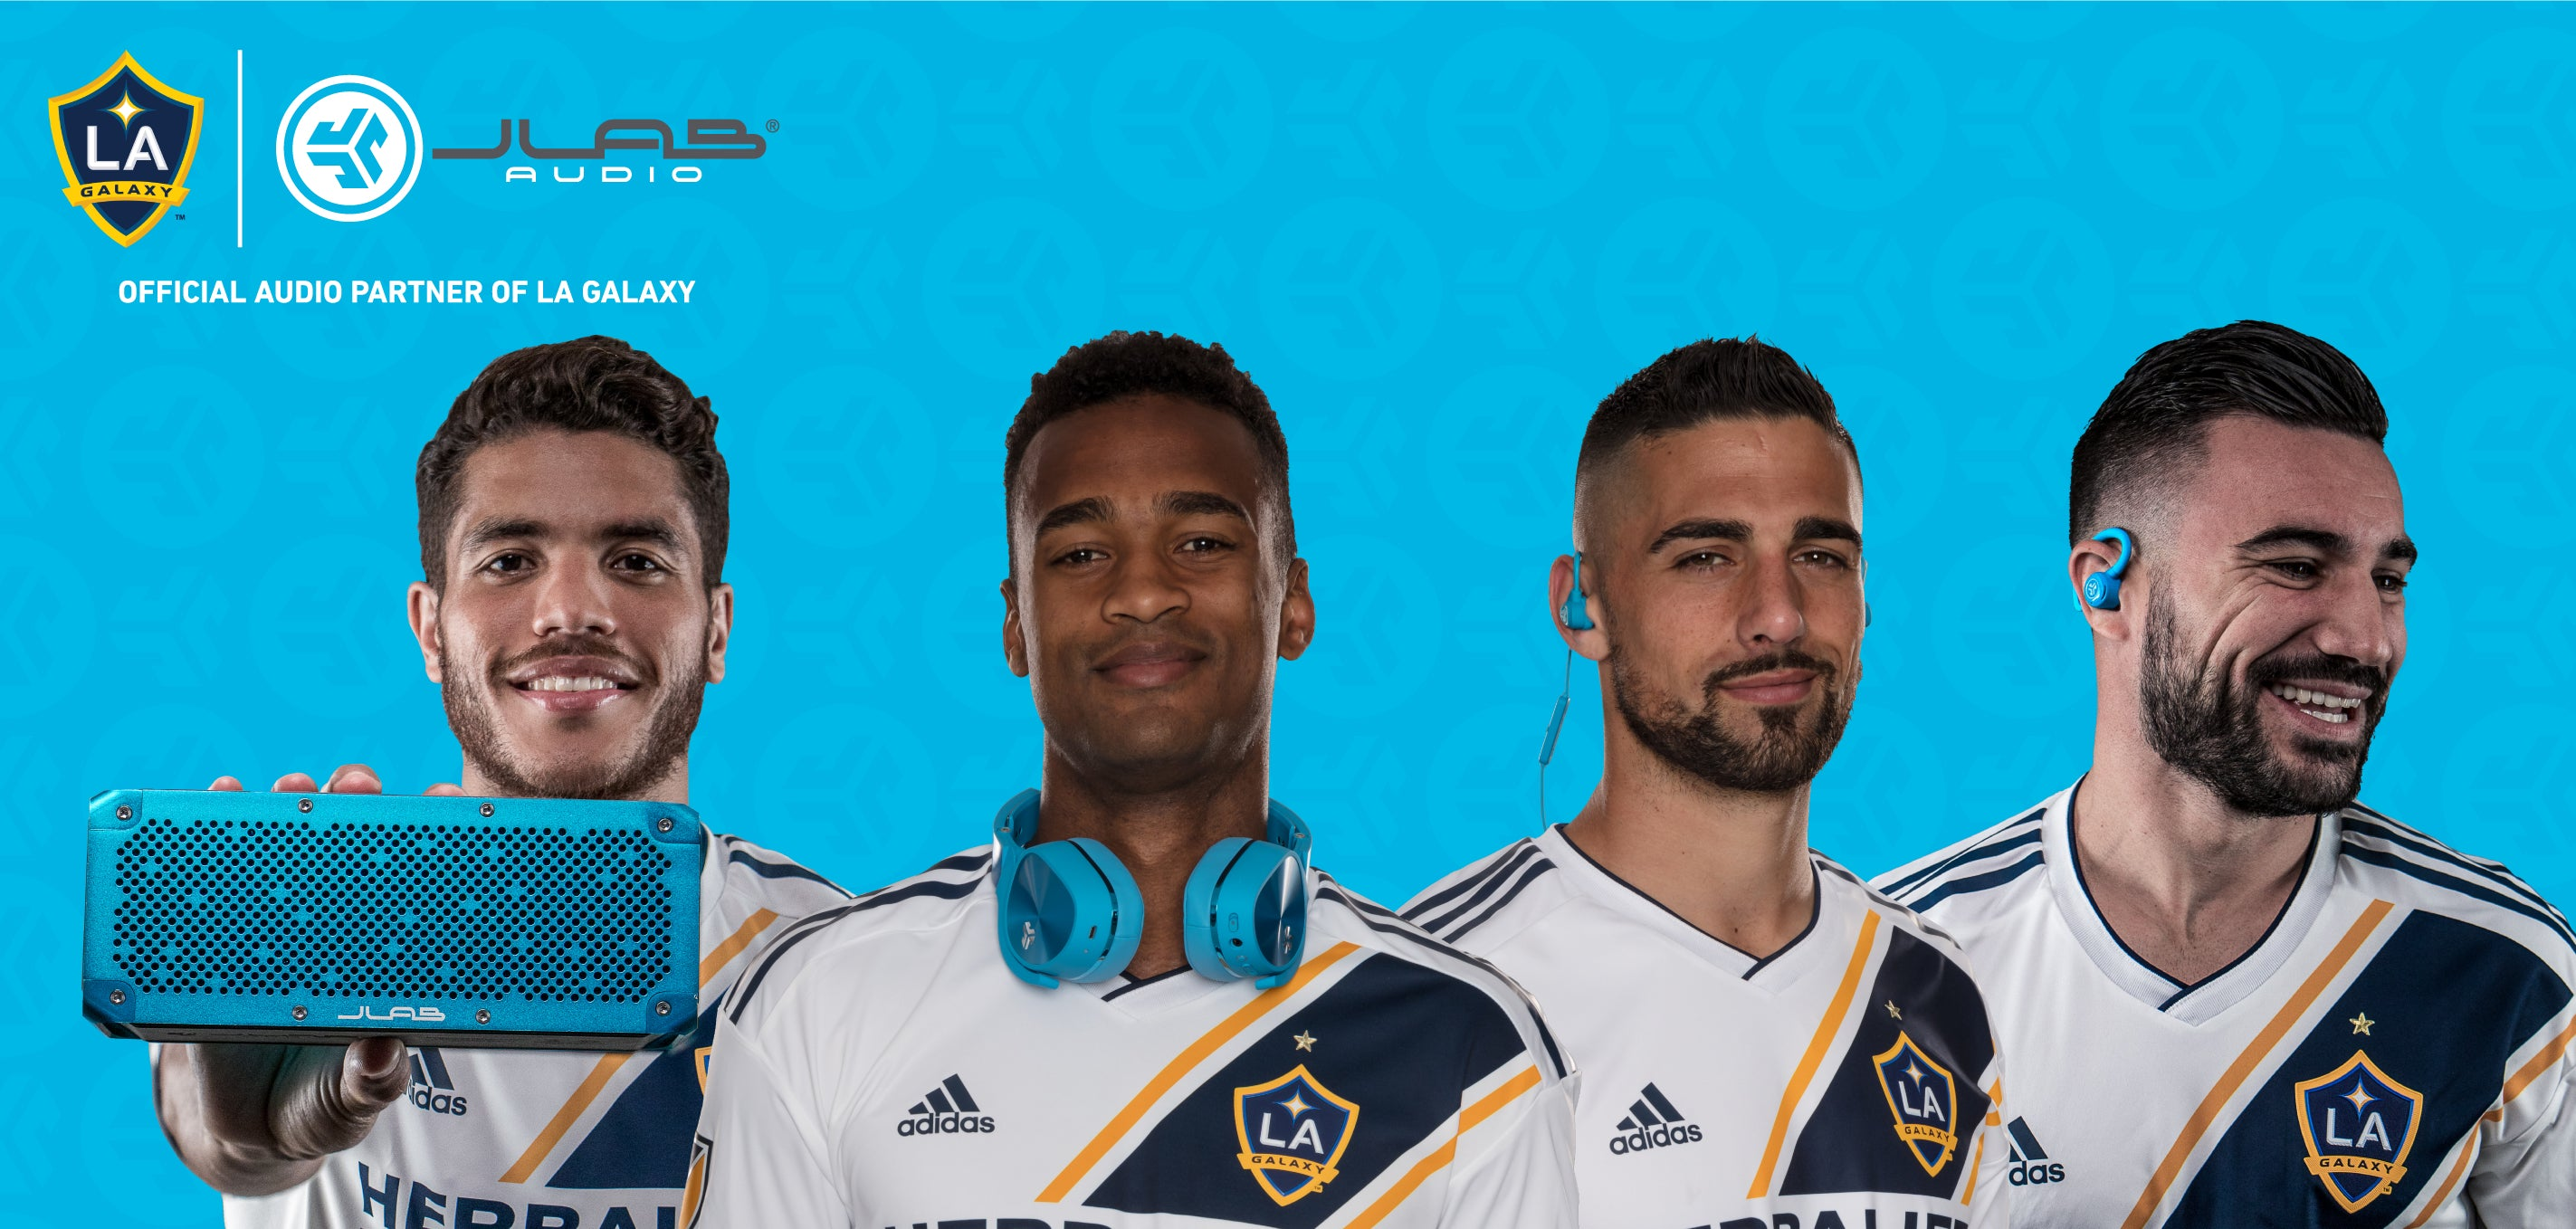 official audio partner of LA Galaxy